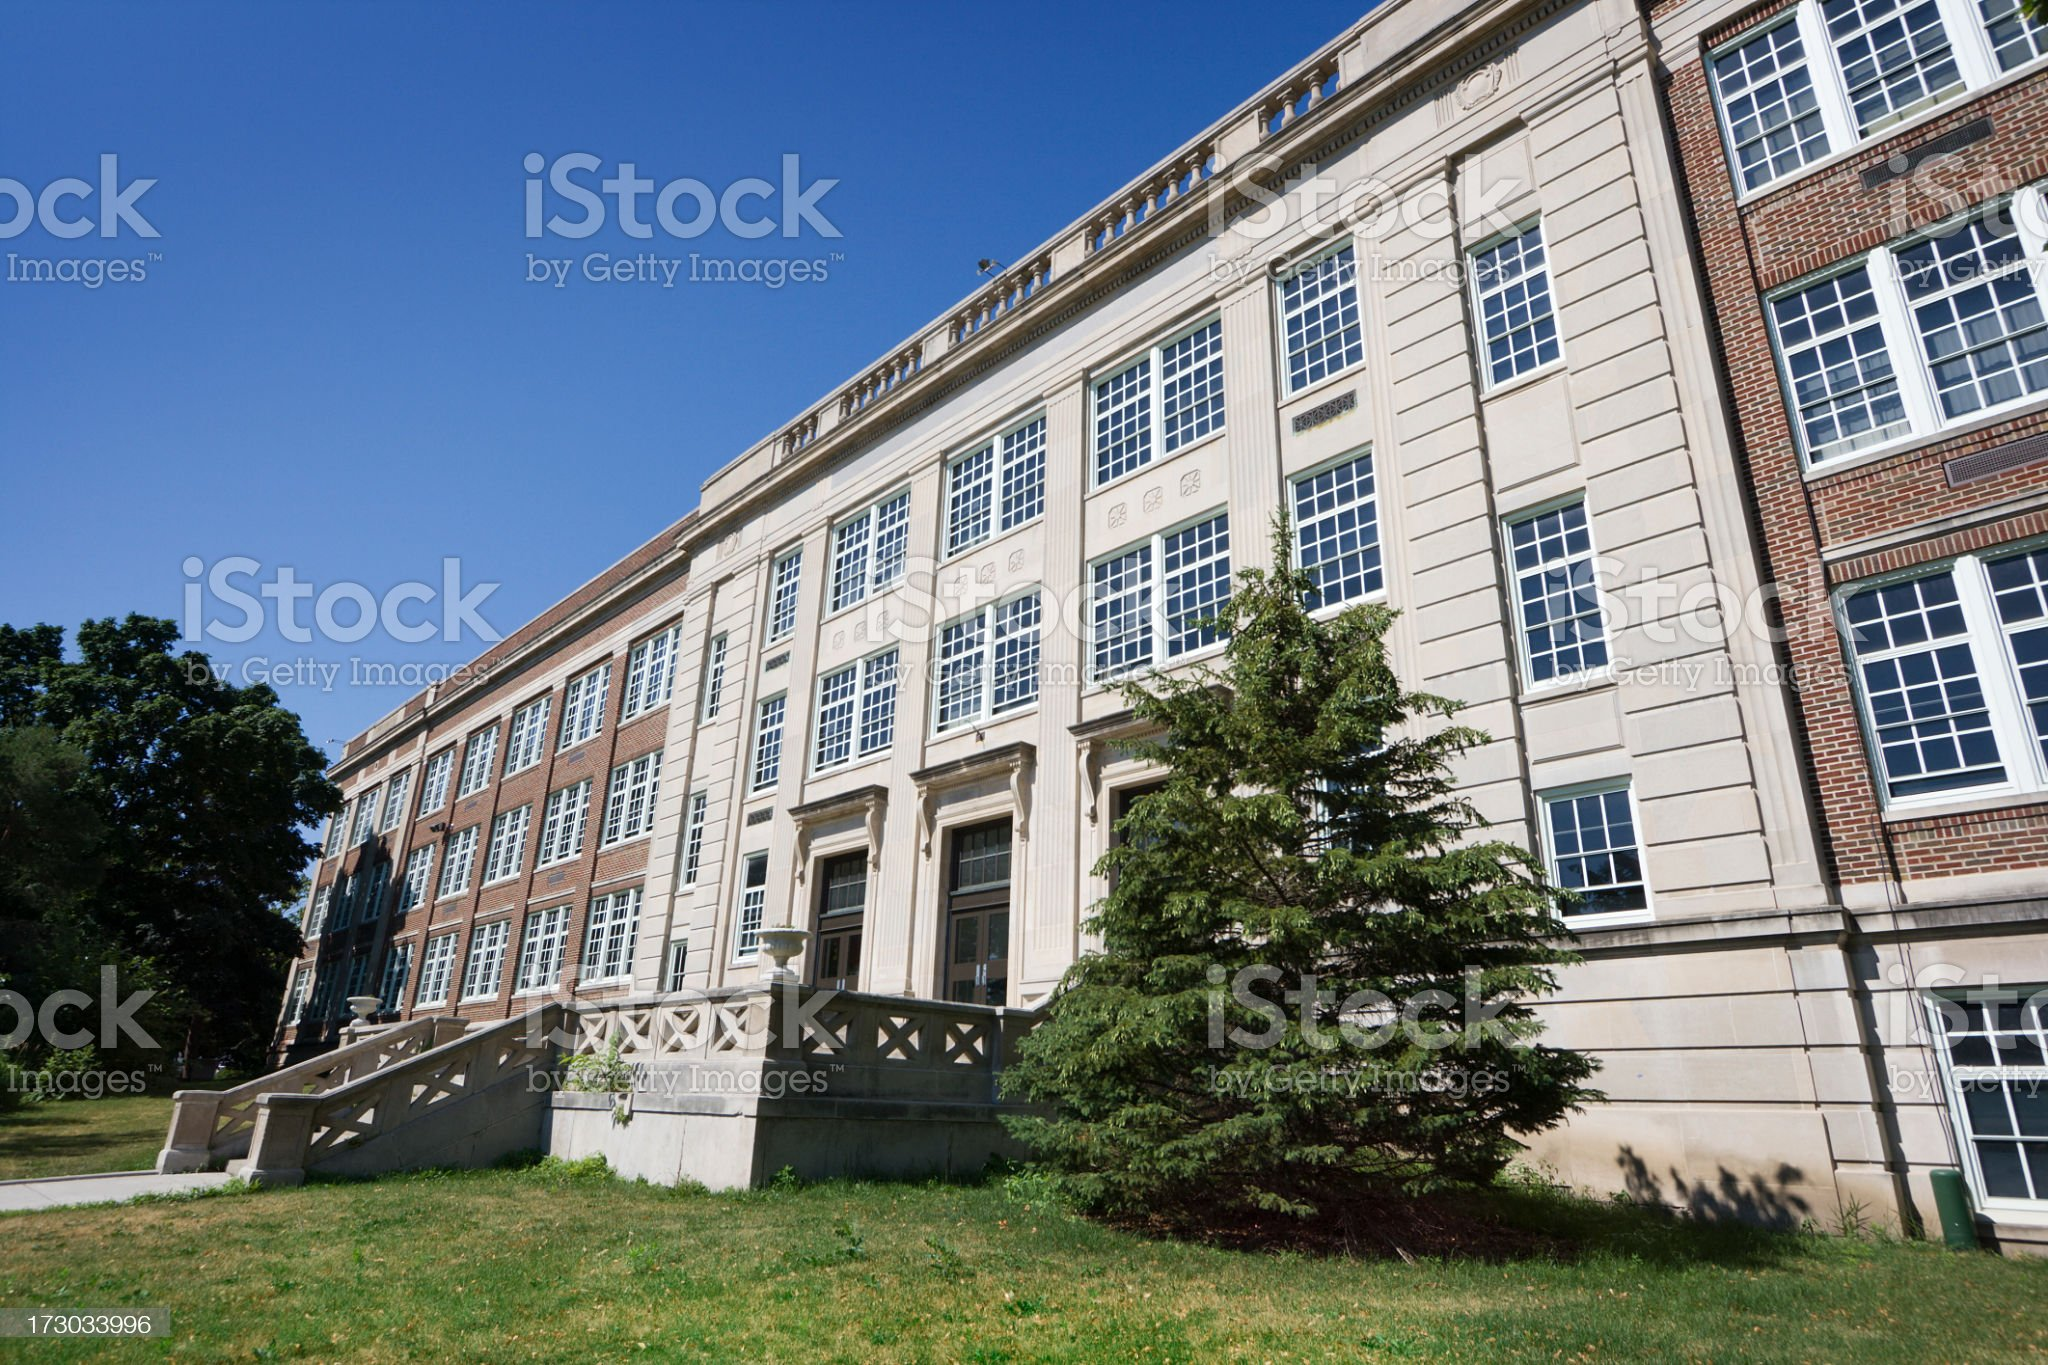 Urban Junior High School Building Facade and Front Steps Entrance royalty-free stock photo